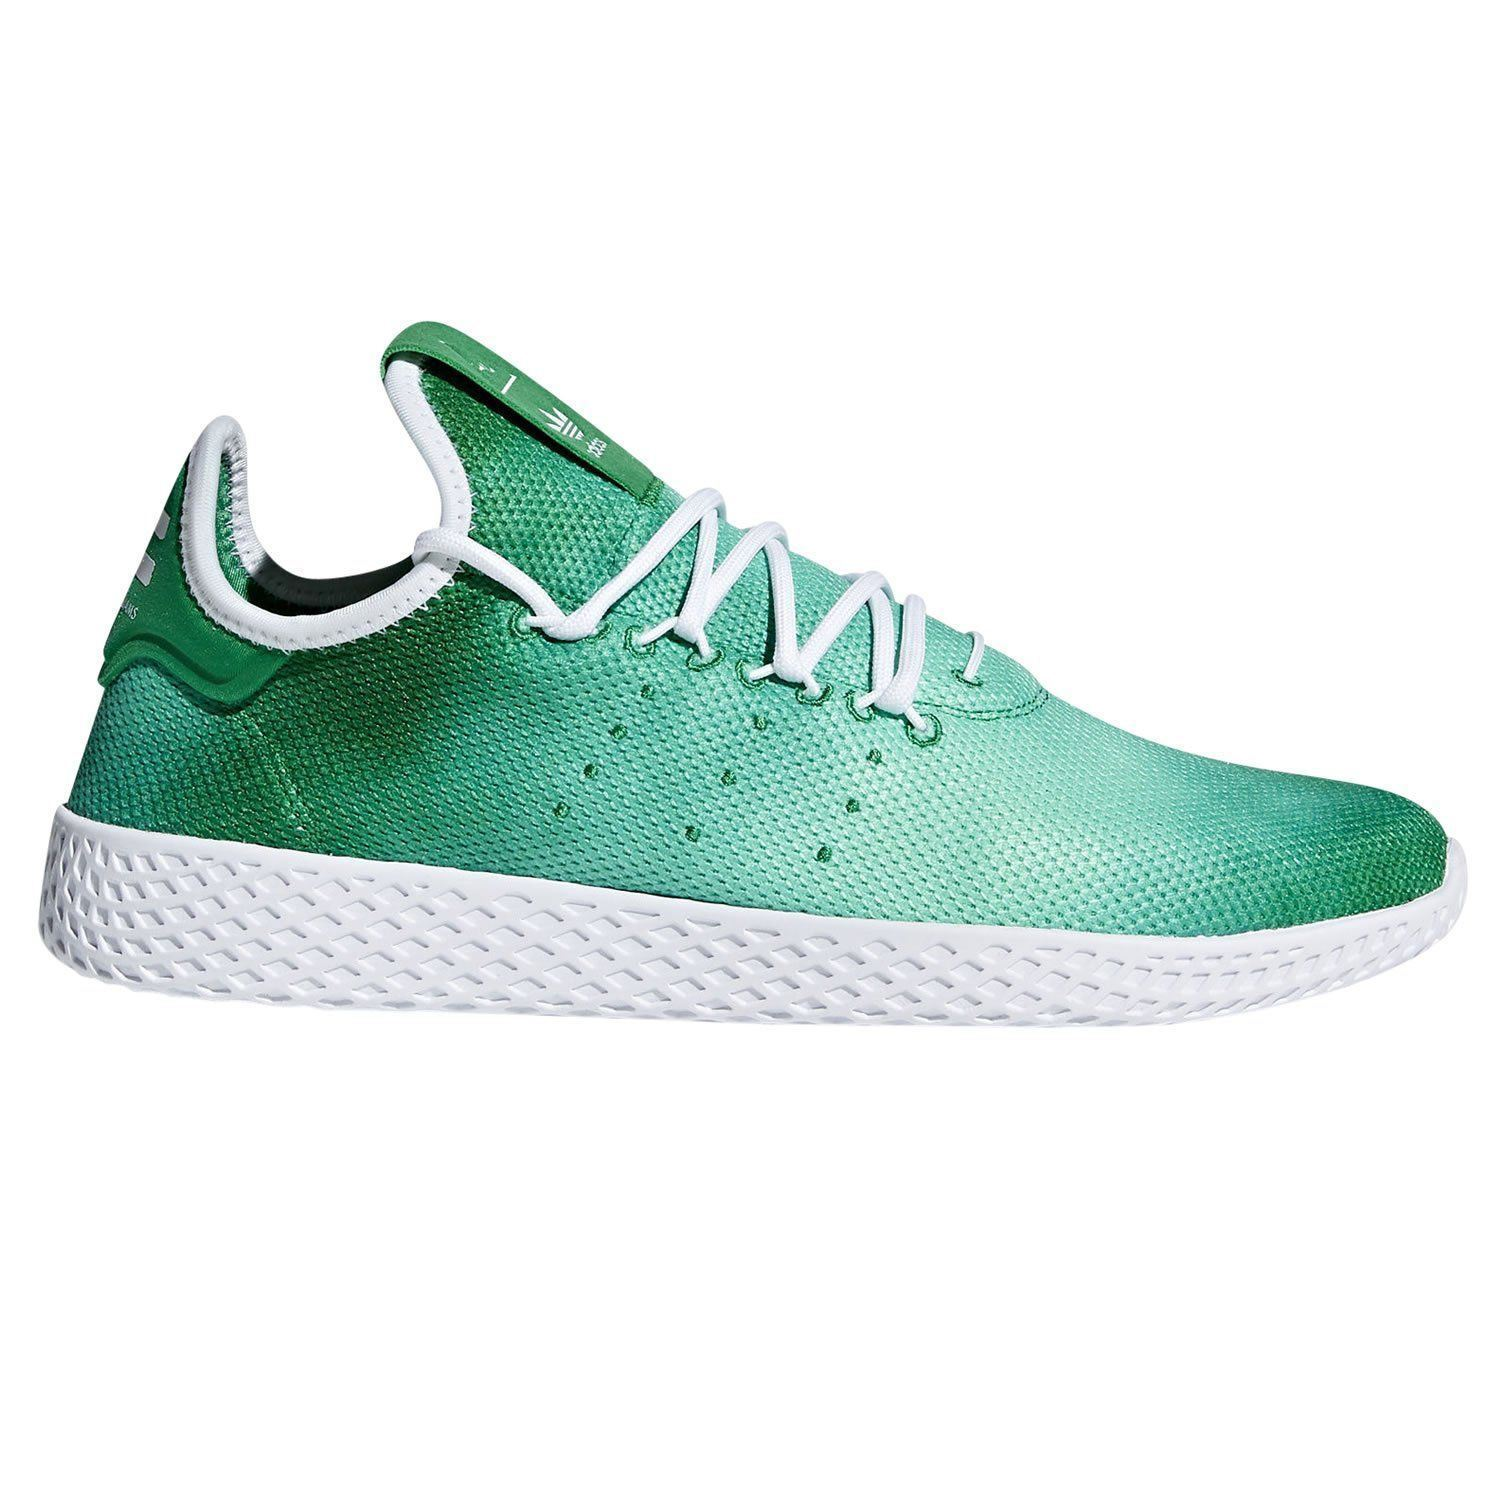 adidas ORIGINALS PHARRELL WILLIAMS HU TENNIS SHOE TRAINERS MEN'S GREEN COMFY NEW